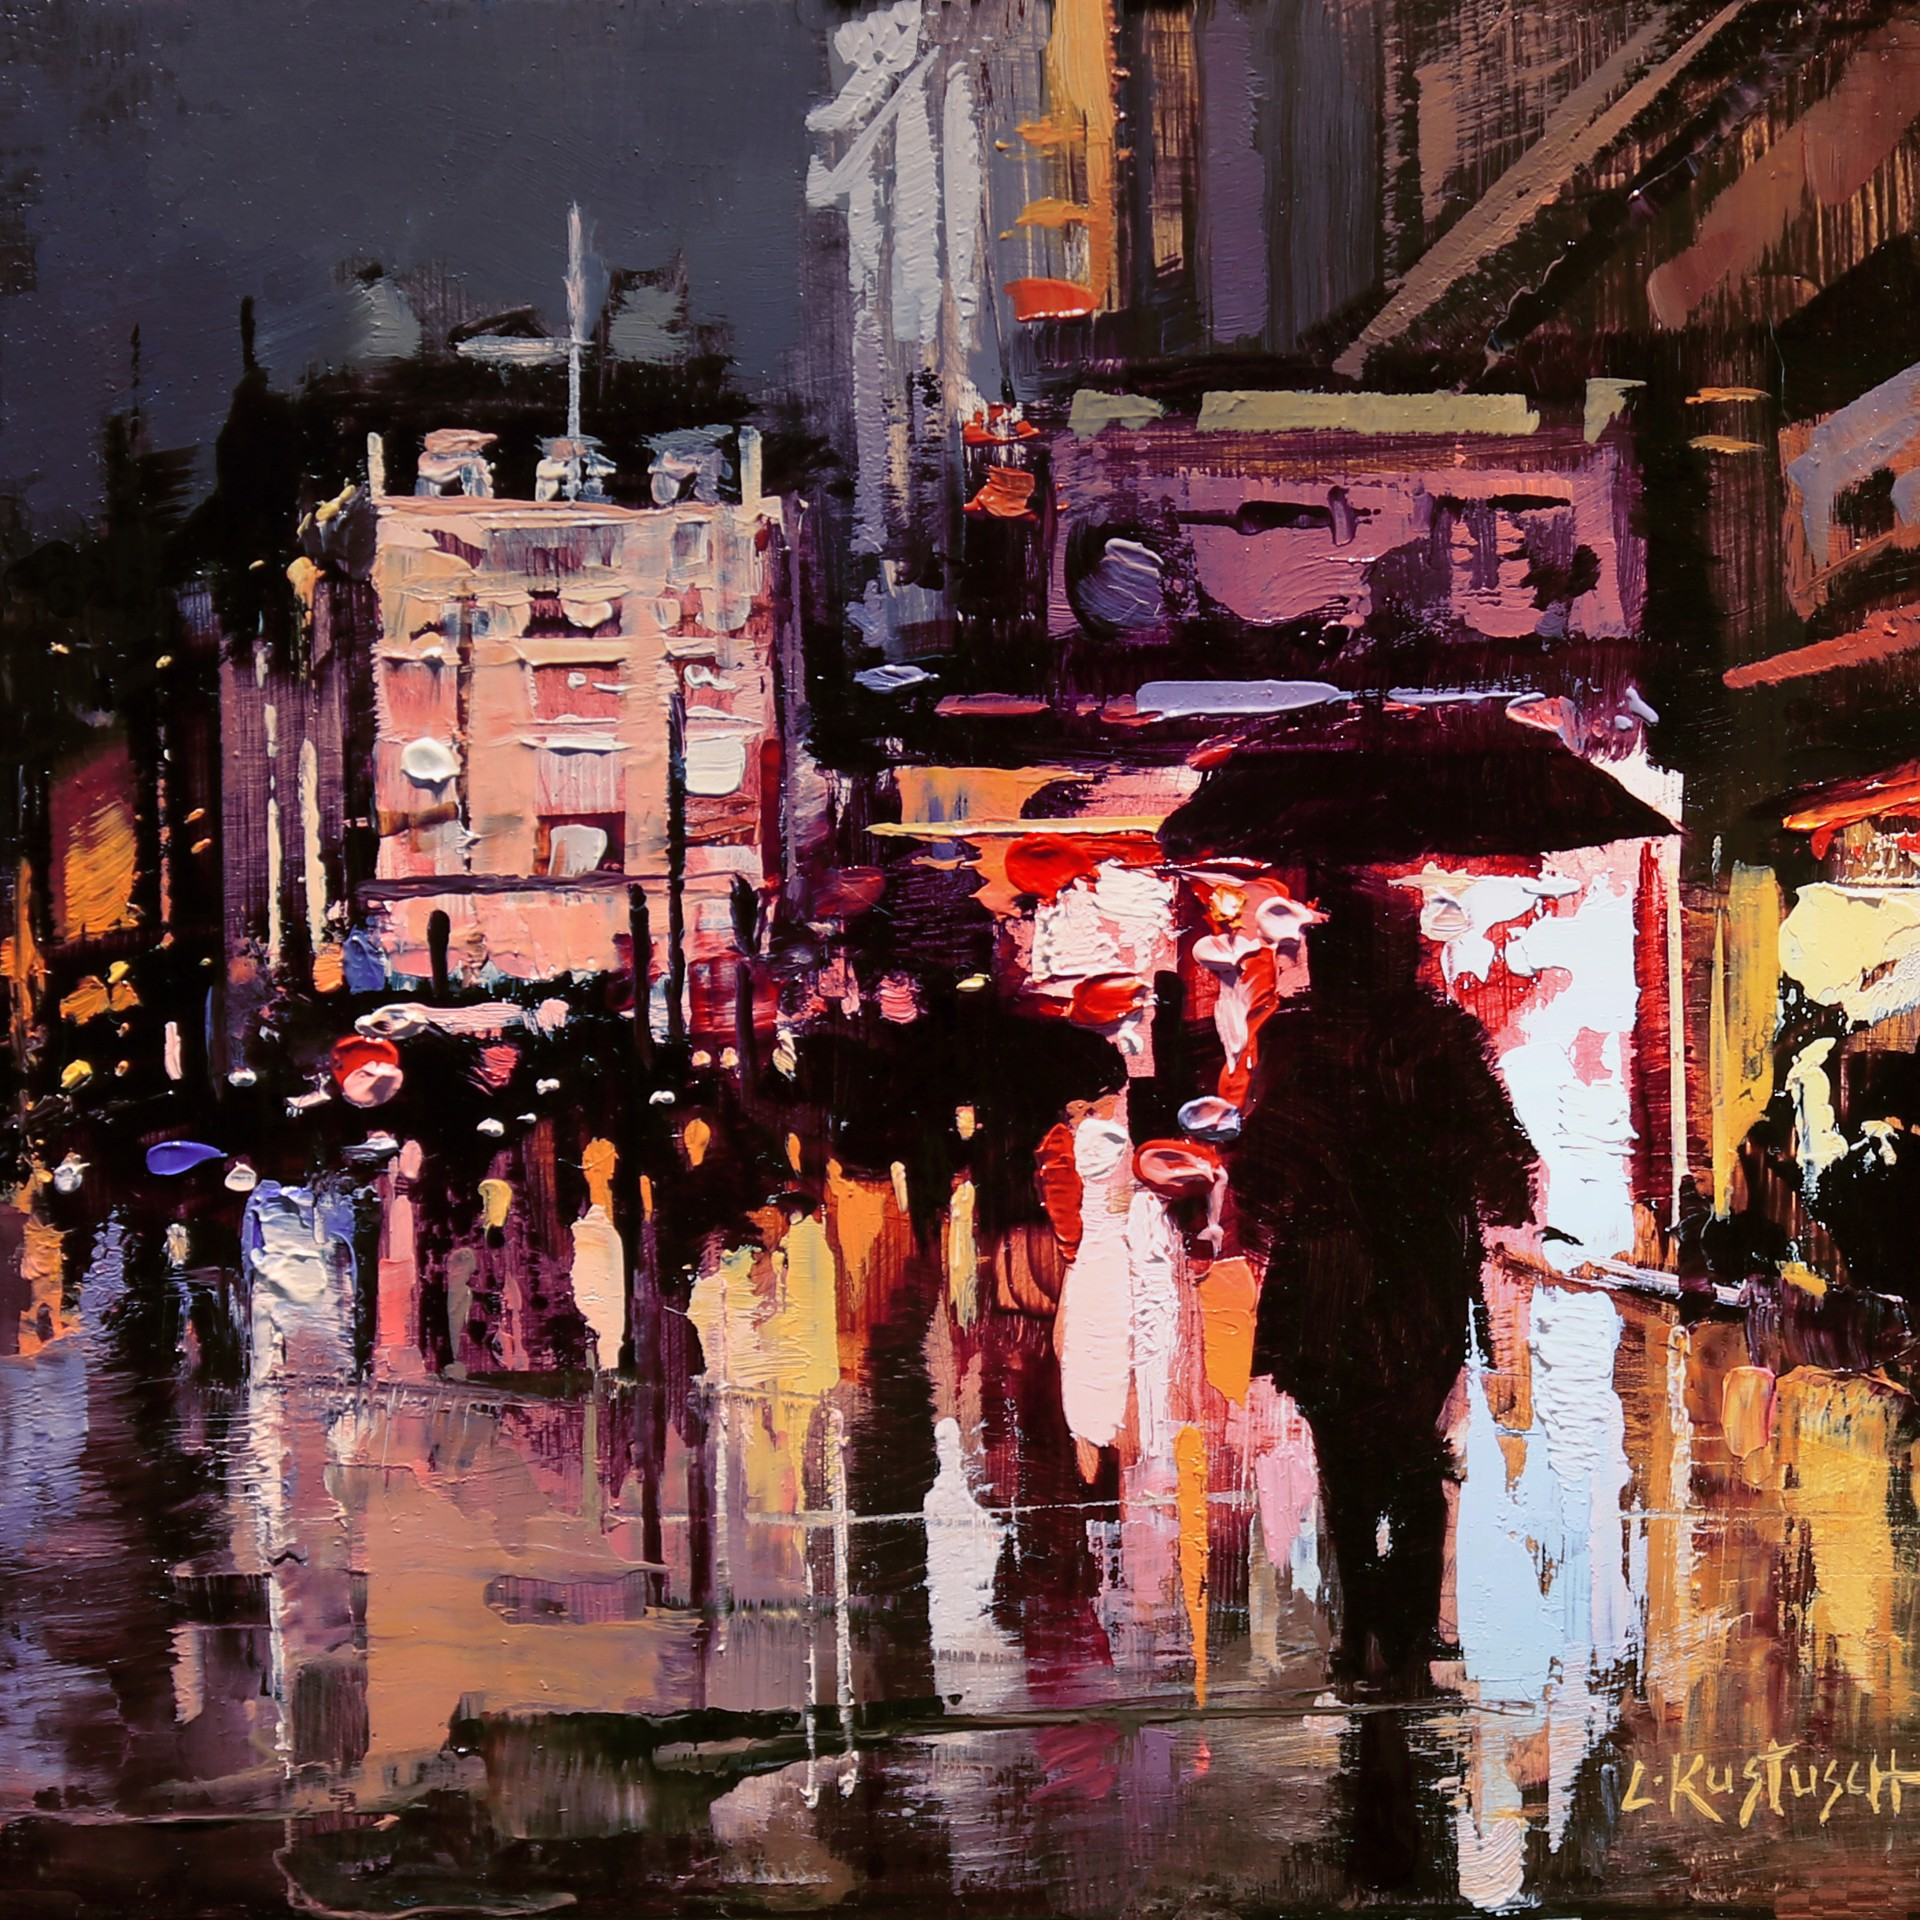 London Lights at Piccadilly Circus by Lindsey Kustusch